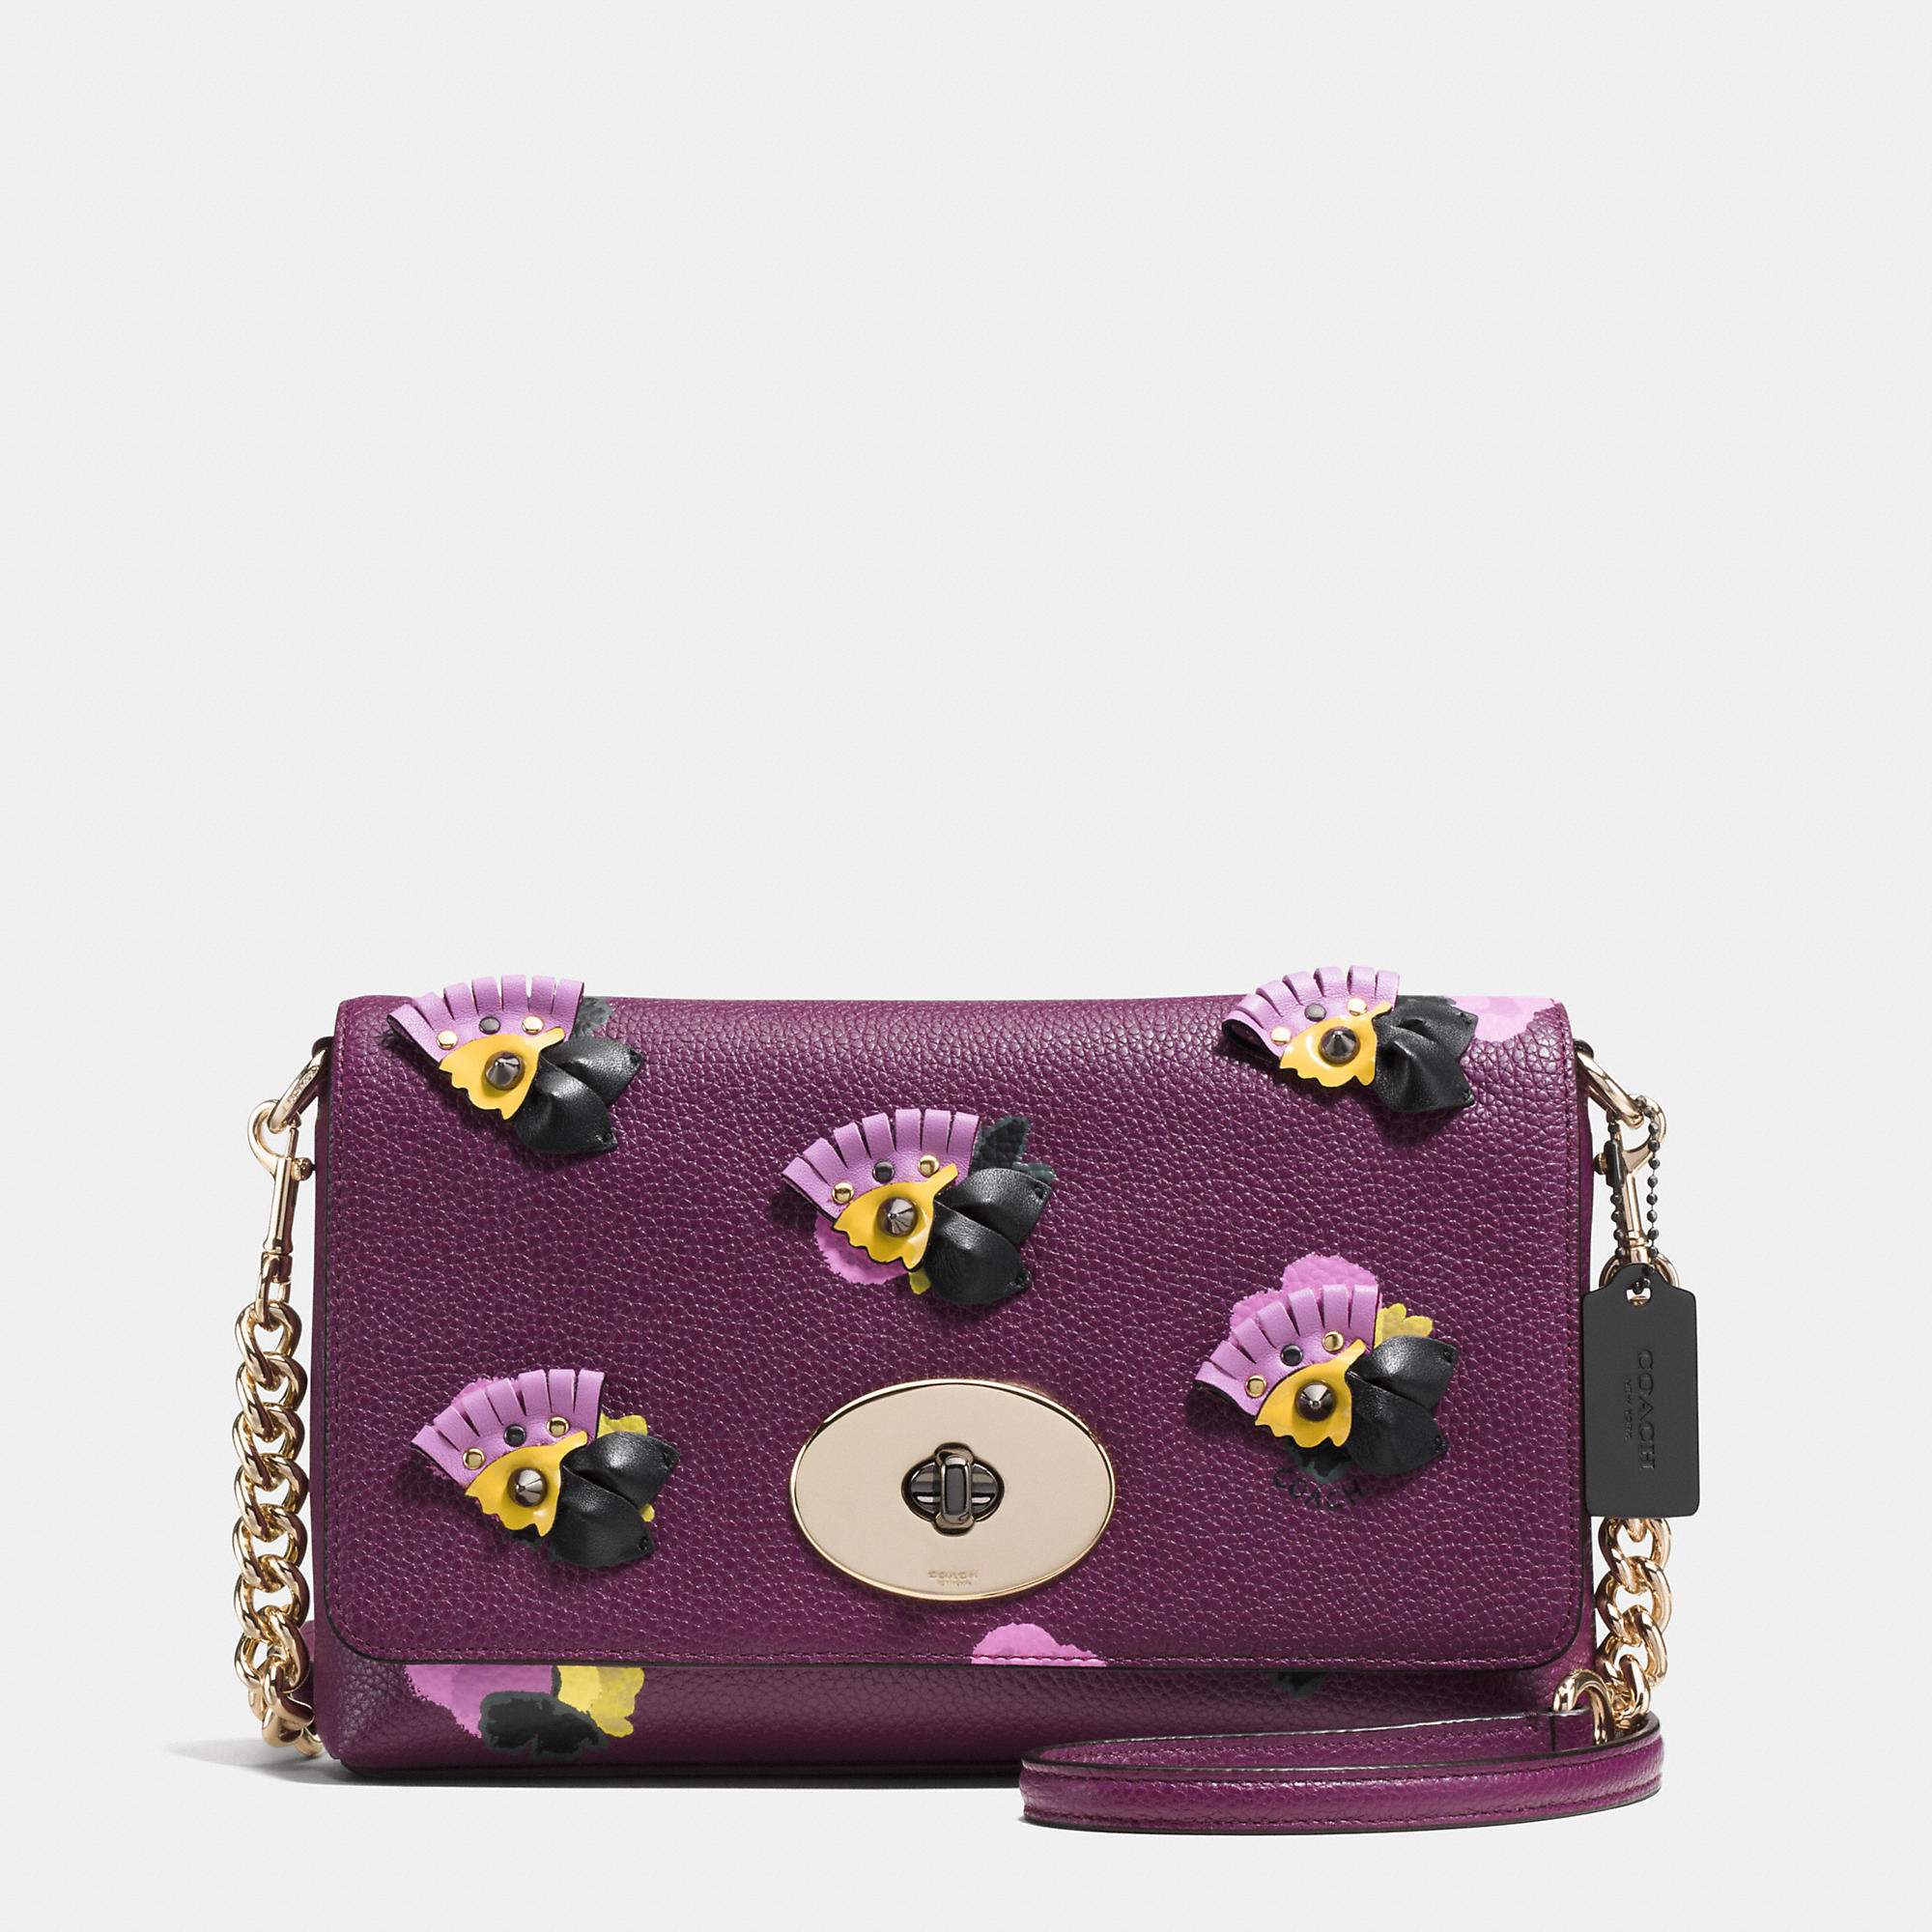 Coach Crosstown Crossbody In Floral Applique Leather In Purple | Lyst